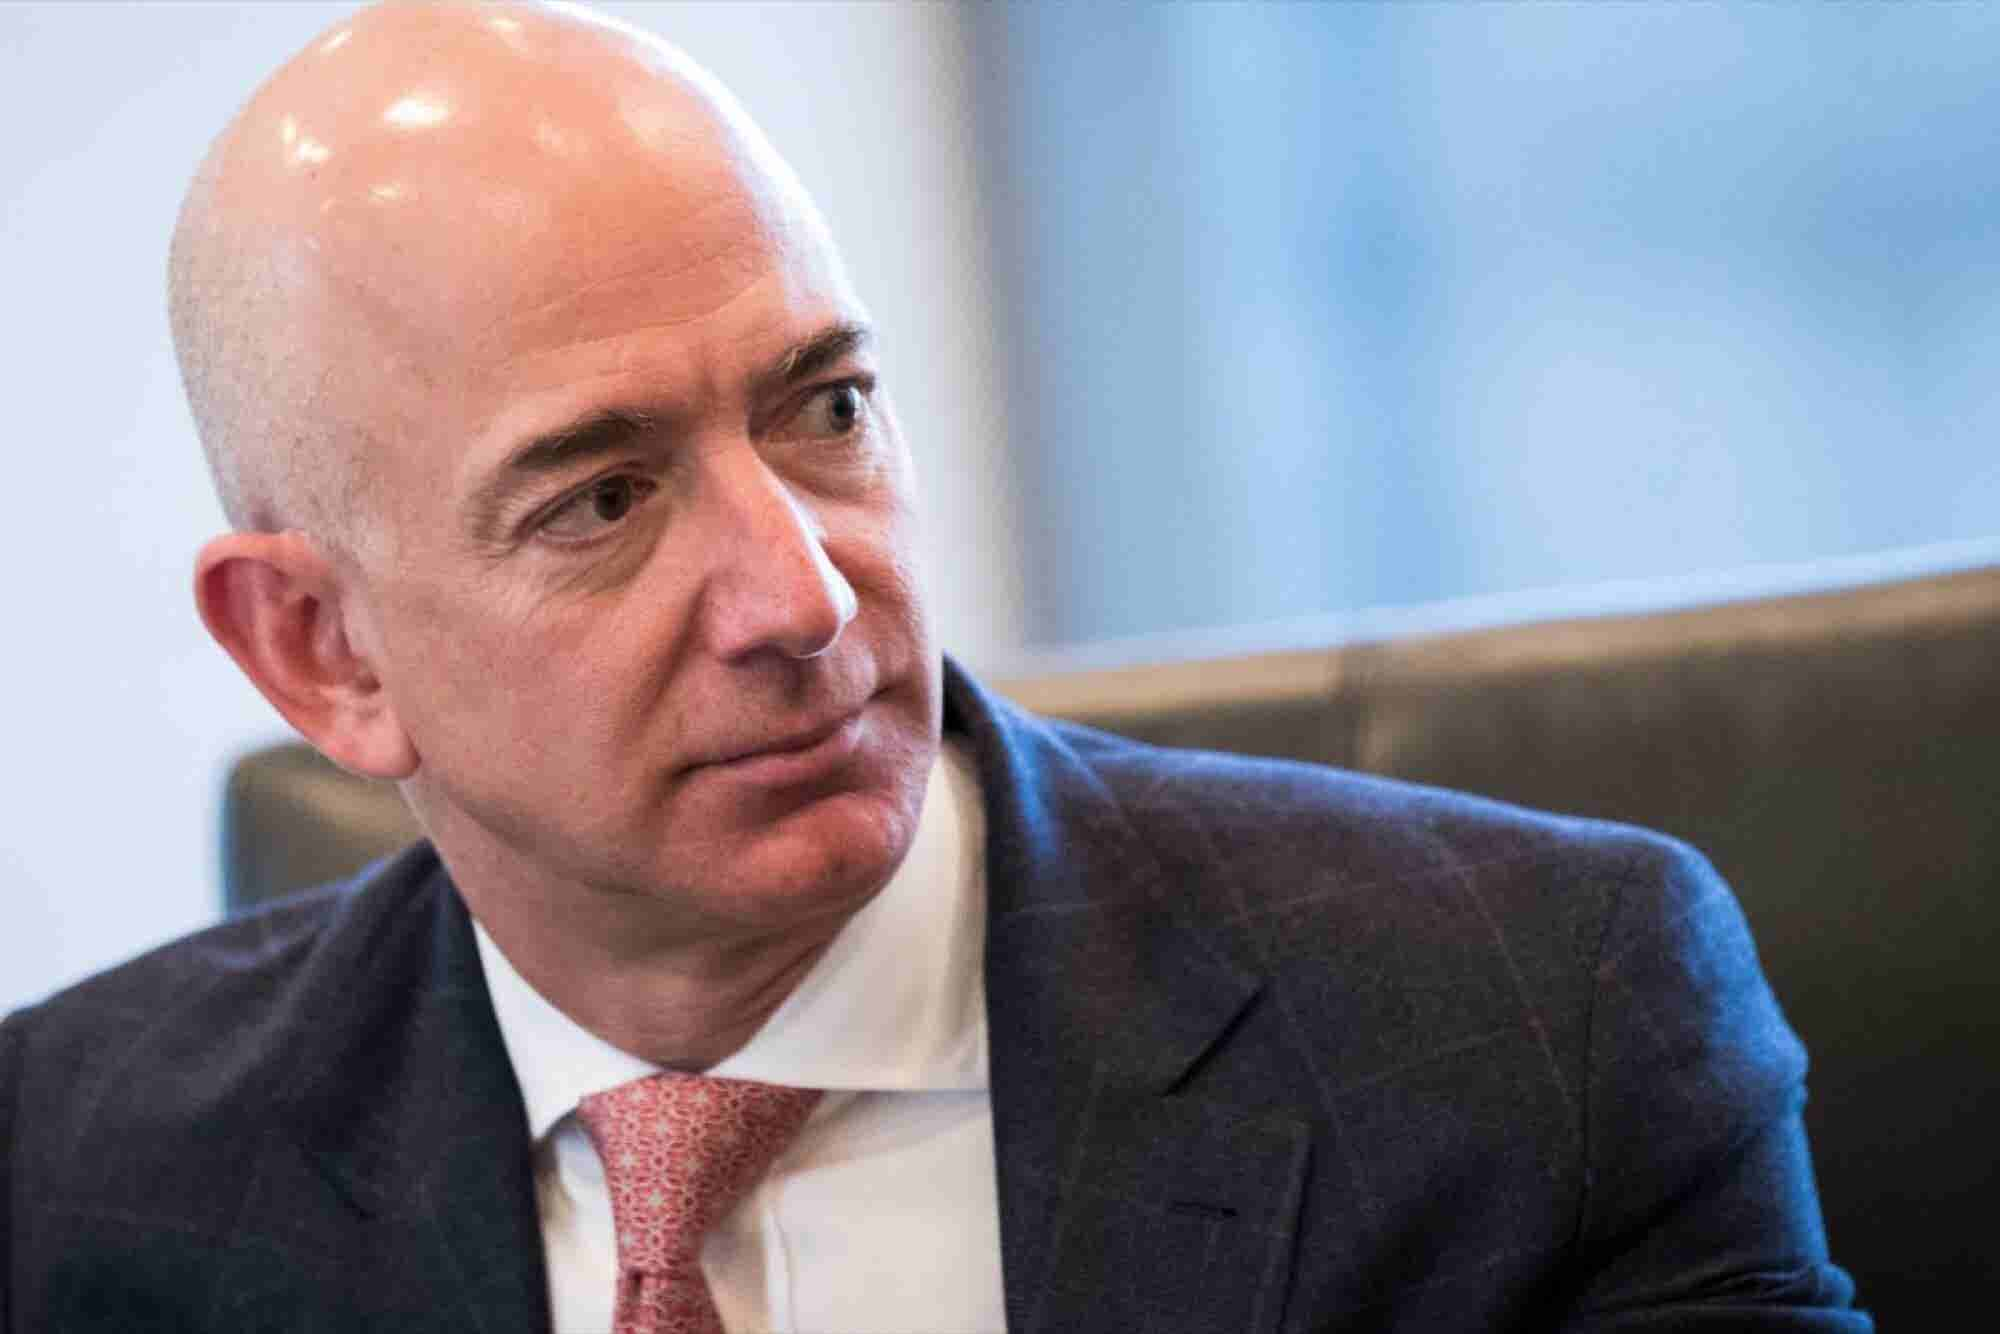 Amazon Spikes Prime Cost to $119, and Dark Chocolate Can Help With Stress and Memory. 3 Things to Know Today.